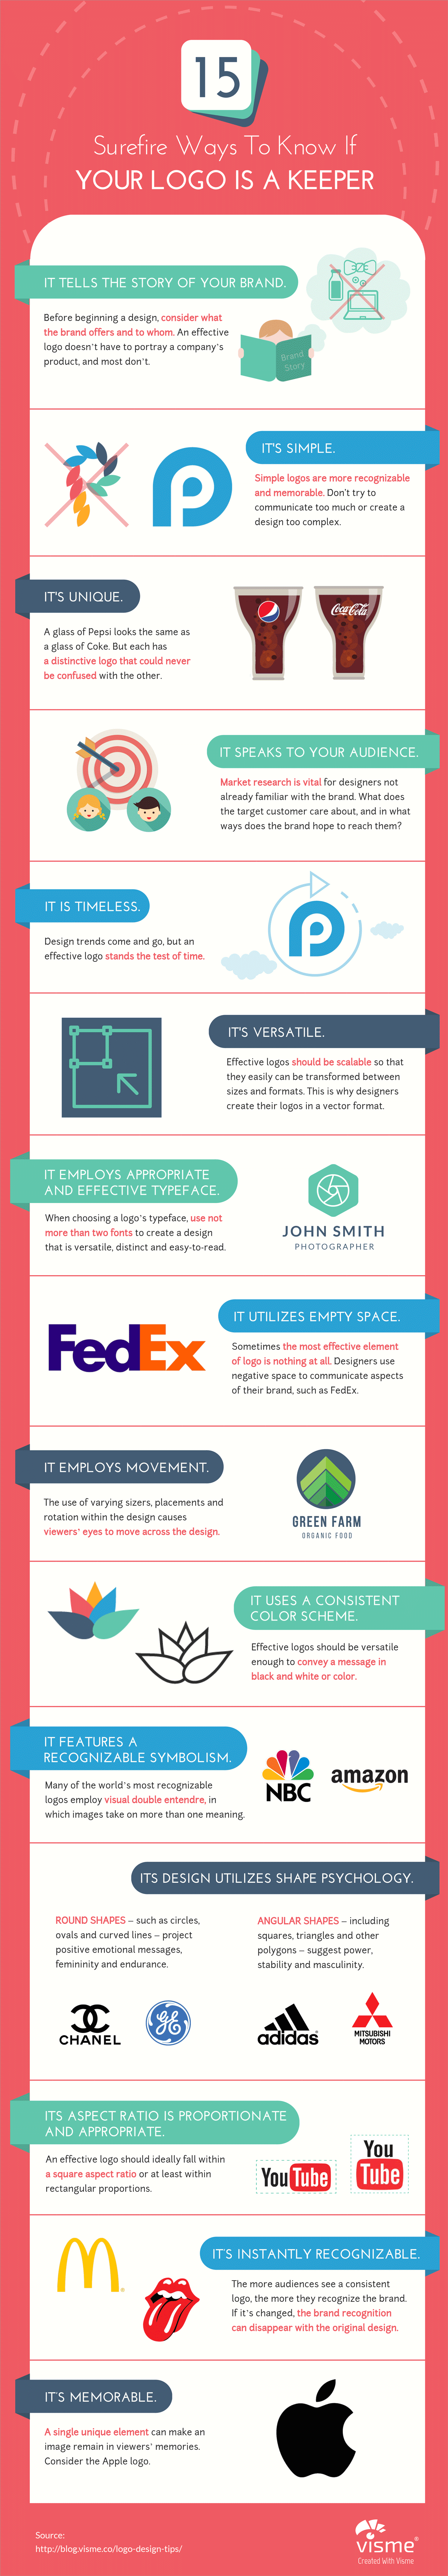 15-Surefire-Ways-to-Know-If-Your-Logo-Is-a-Keeper-Infographic logo design tips